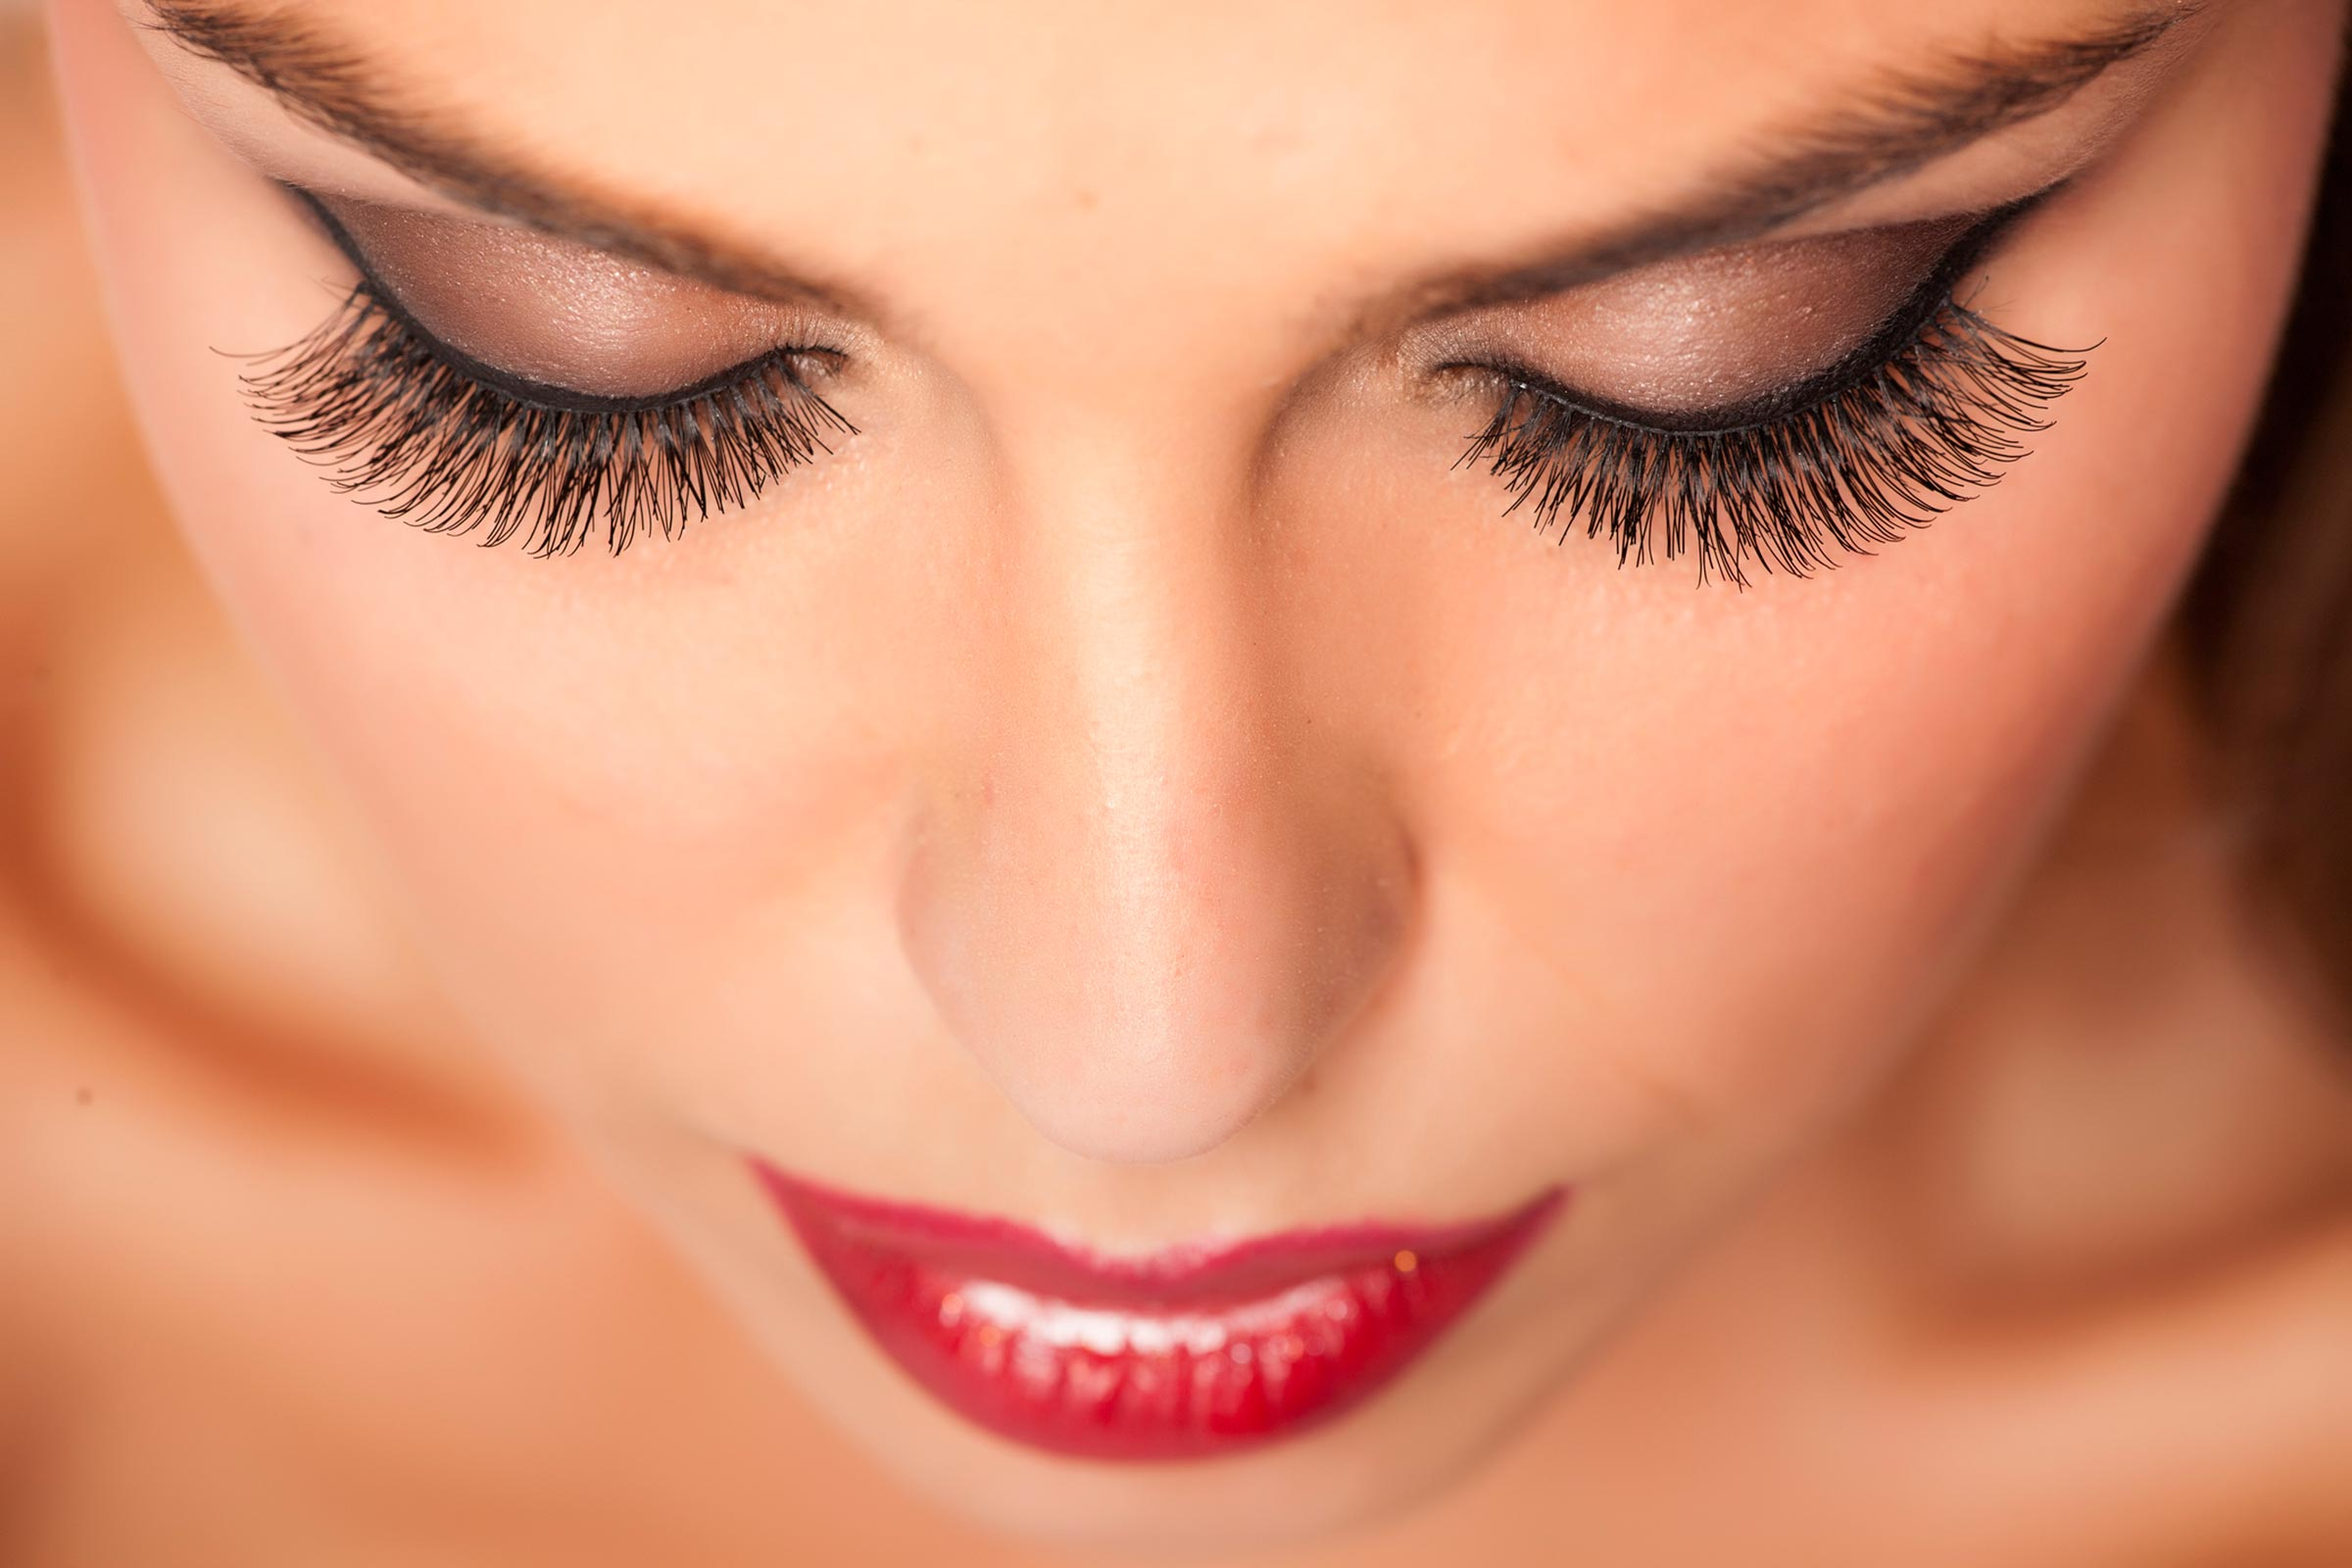 What Care Should Be Kept After The Eyelash Extension